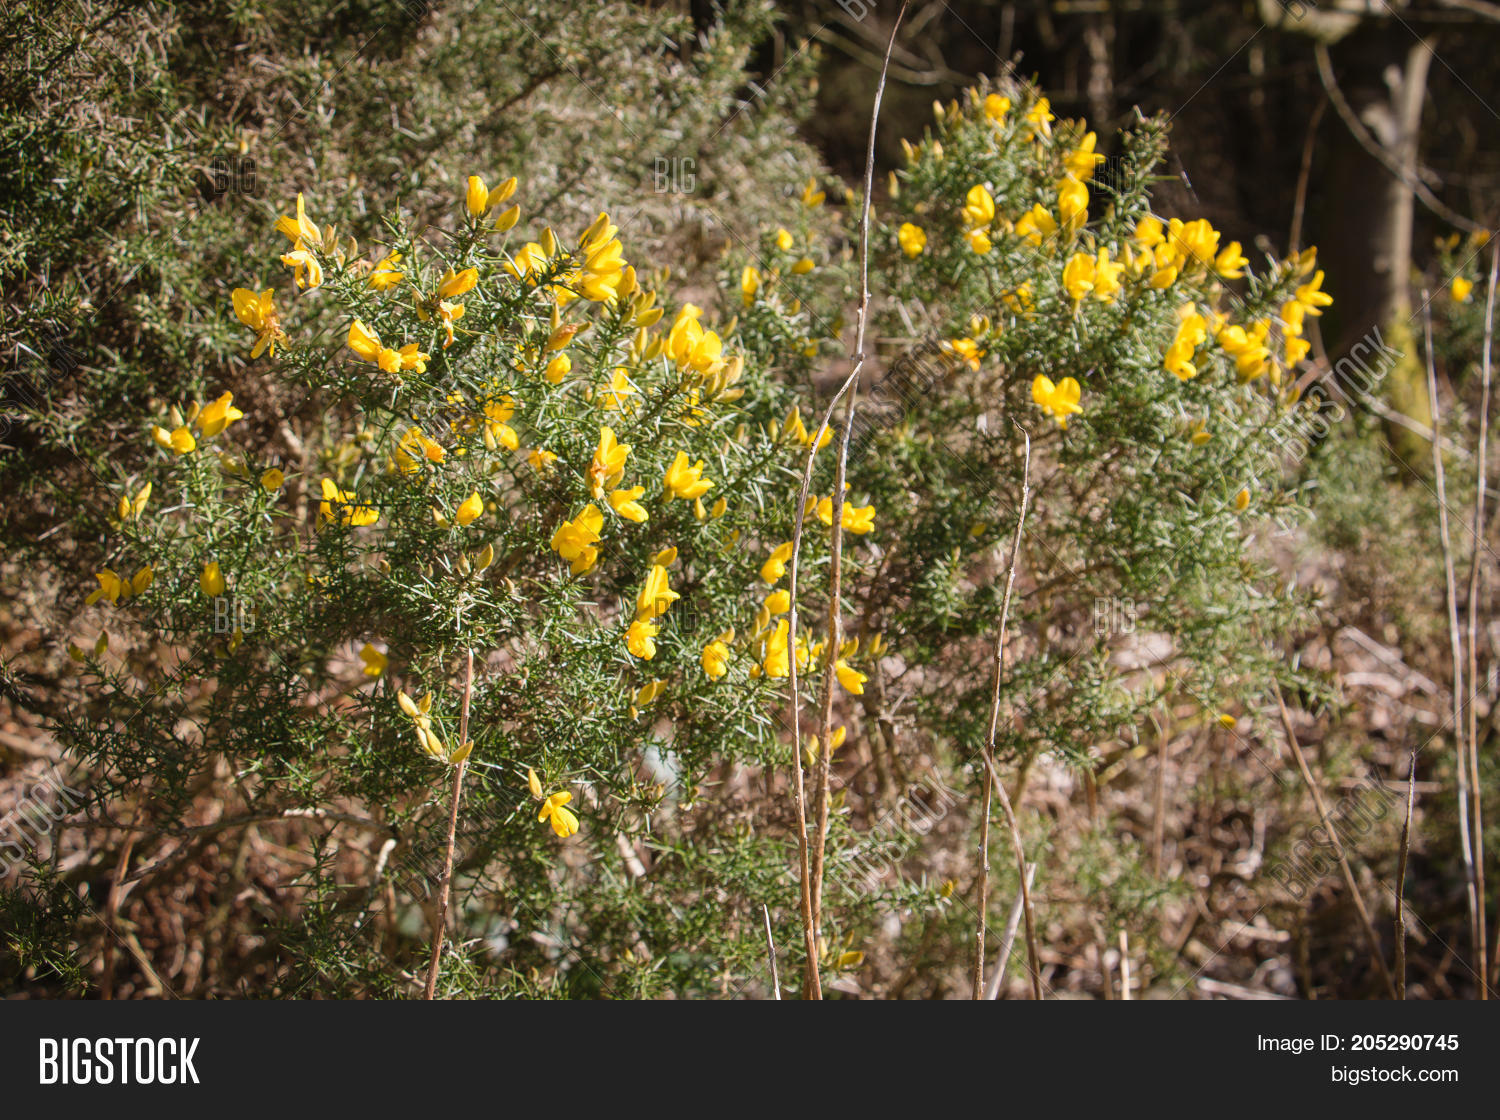 Flowering Common Gorse Image Photo Free Trial Bigstock